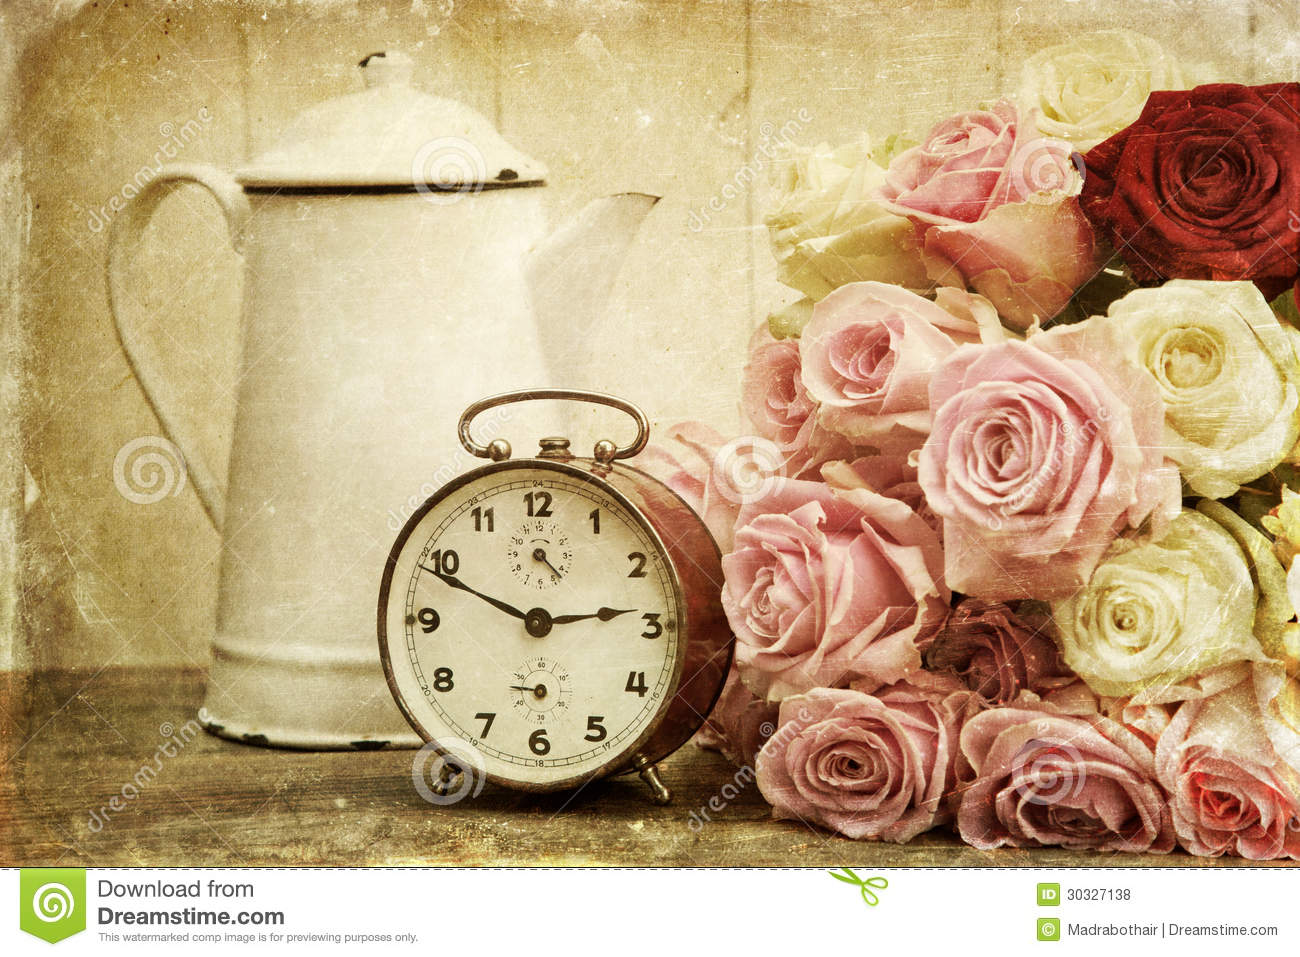 Desktop Wallpaper Book Quotes Vintage Textured Still Life With Roses And Alarm Clock